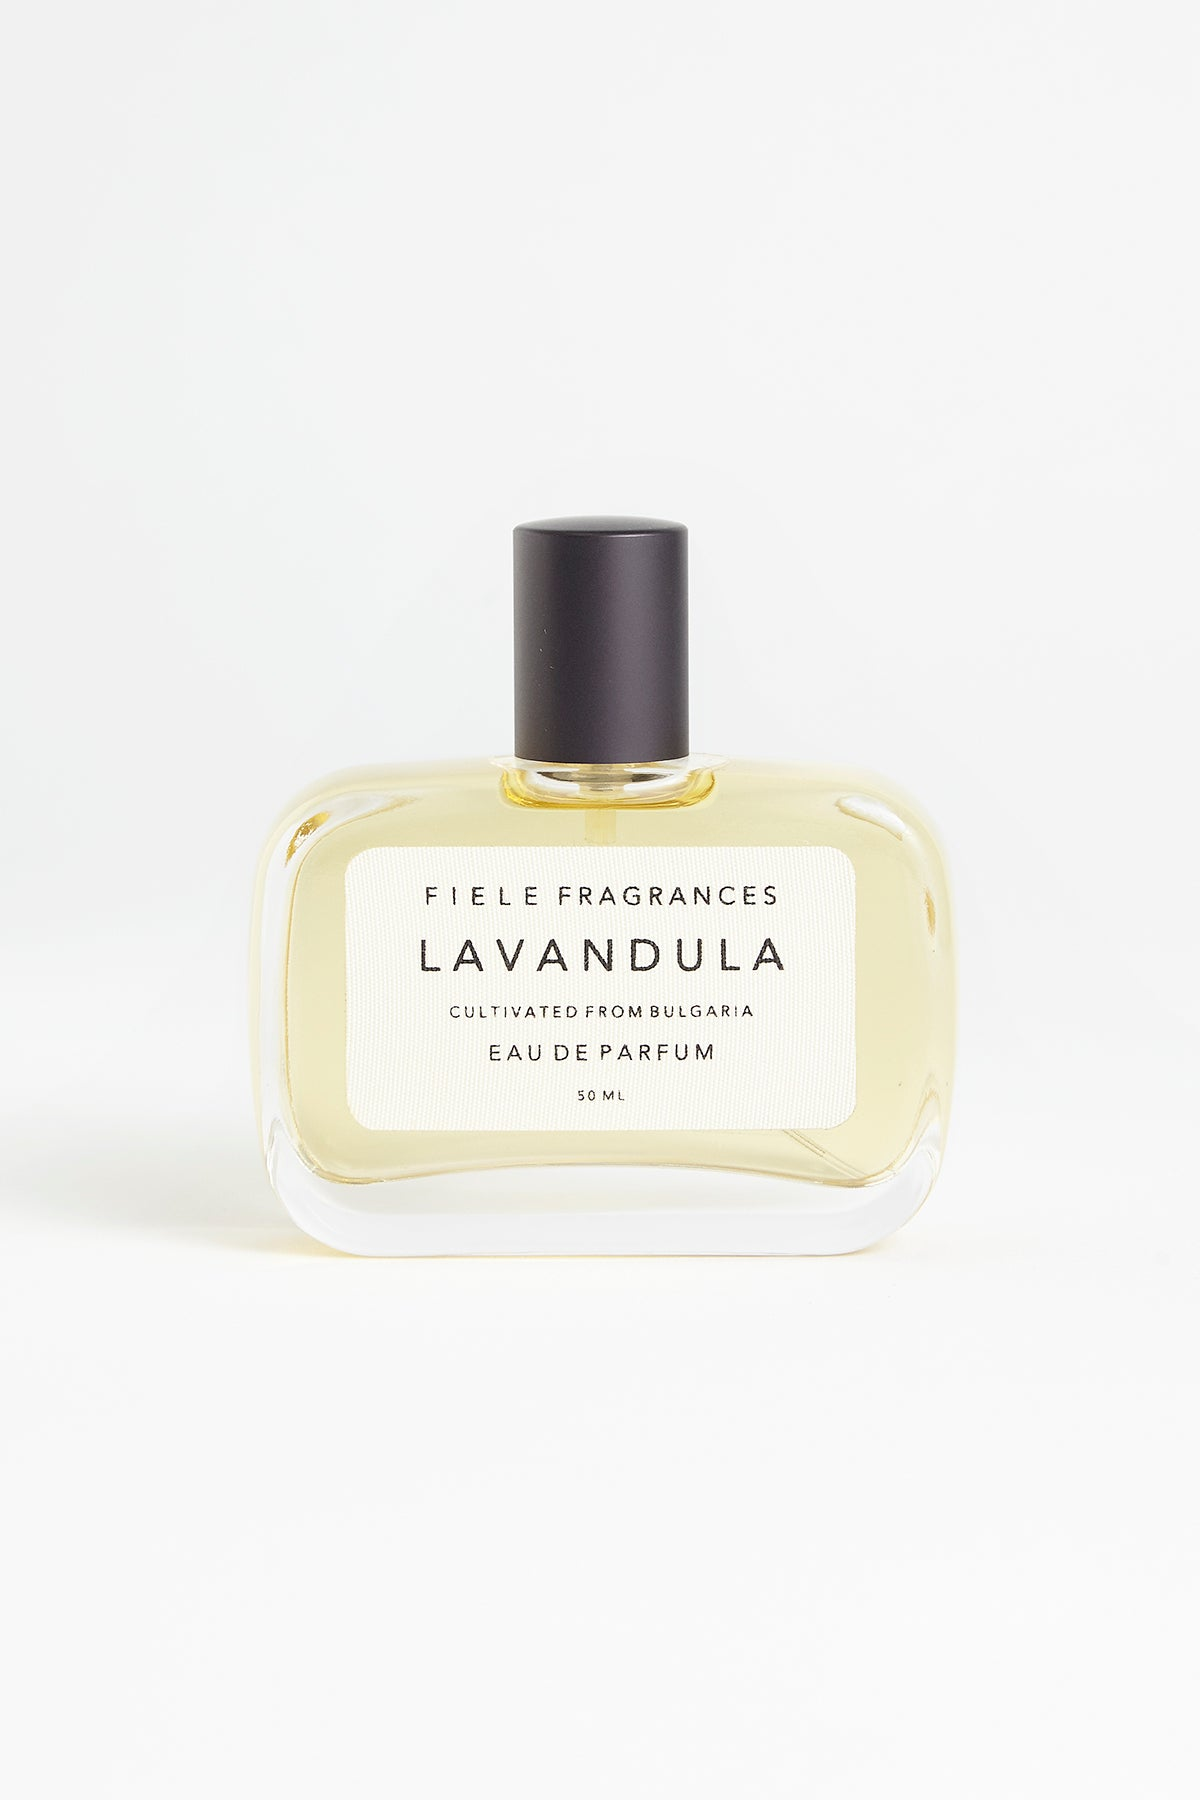 FIELE FRAGRANCE - LAVANDULA